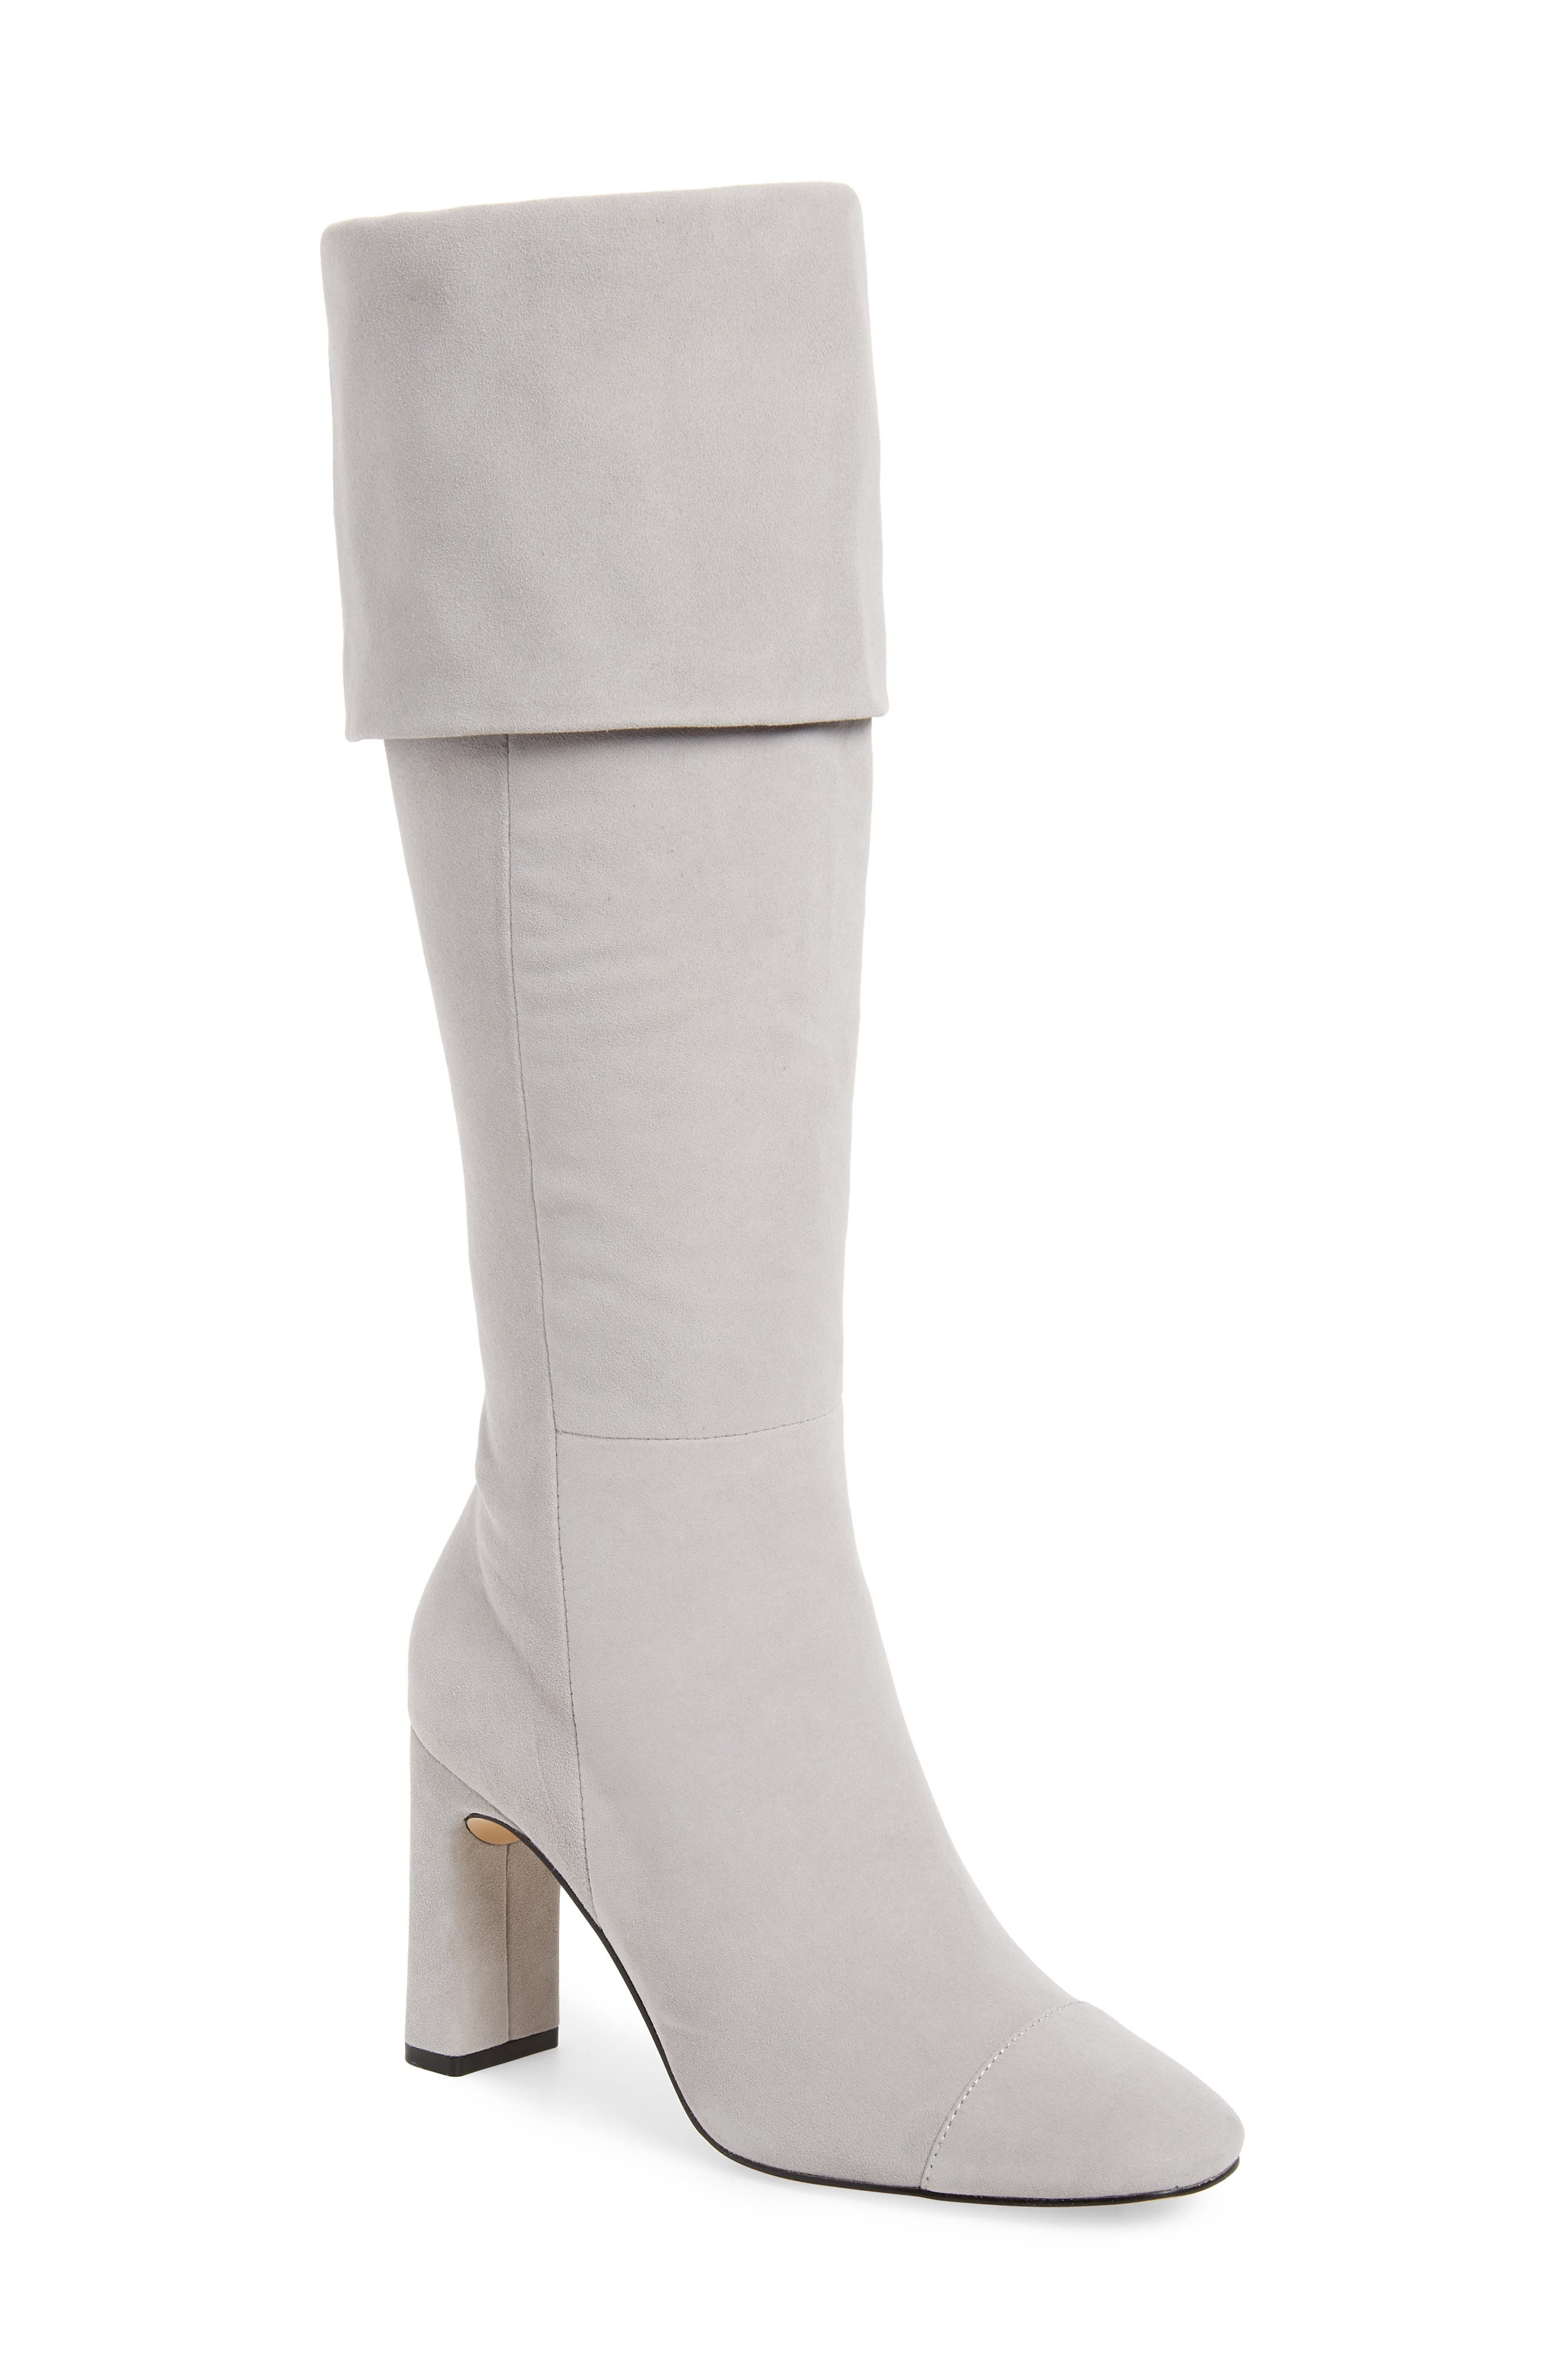 Mia Knee High Boot,                         Main,                         color, LIGHT GREY SUEDE